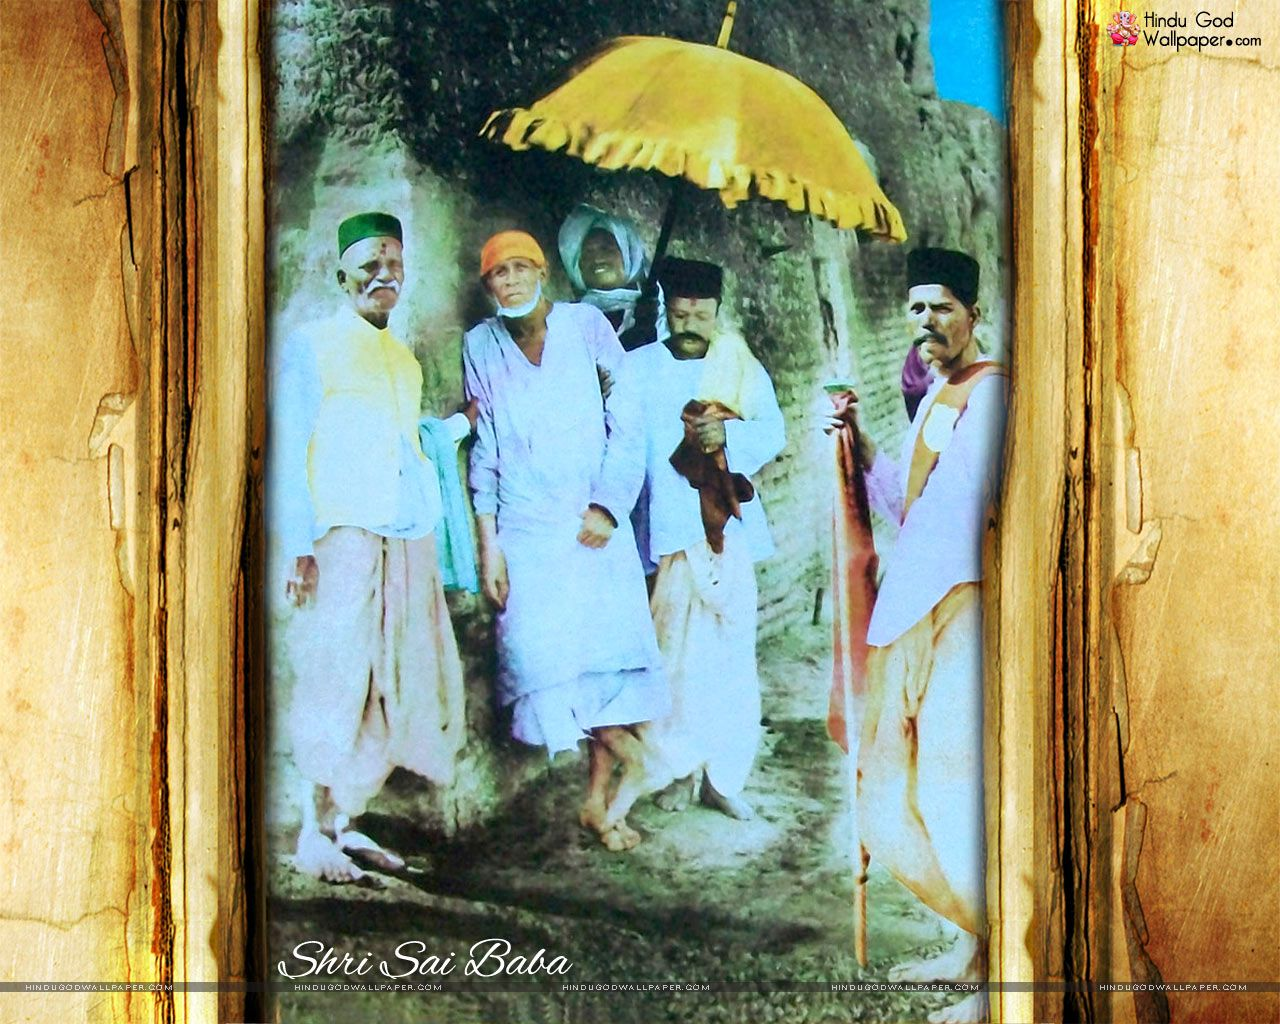 Original Sai Baba Wallpaper Photo Download Sai Baba Wallpapers